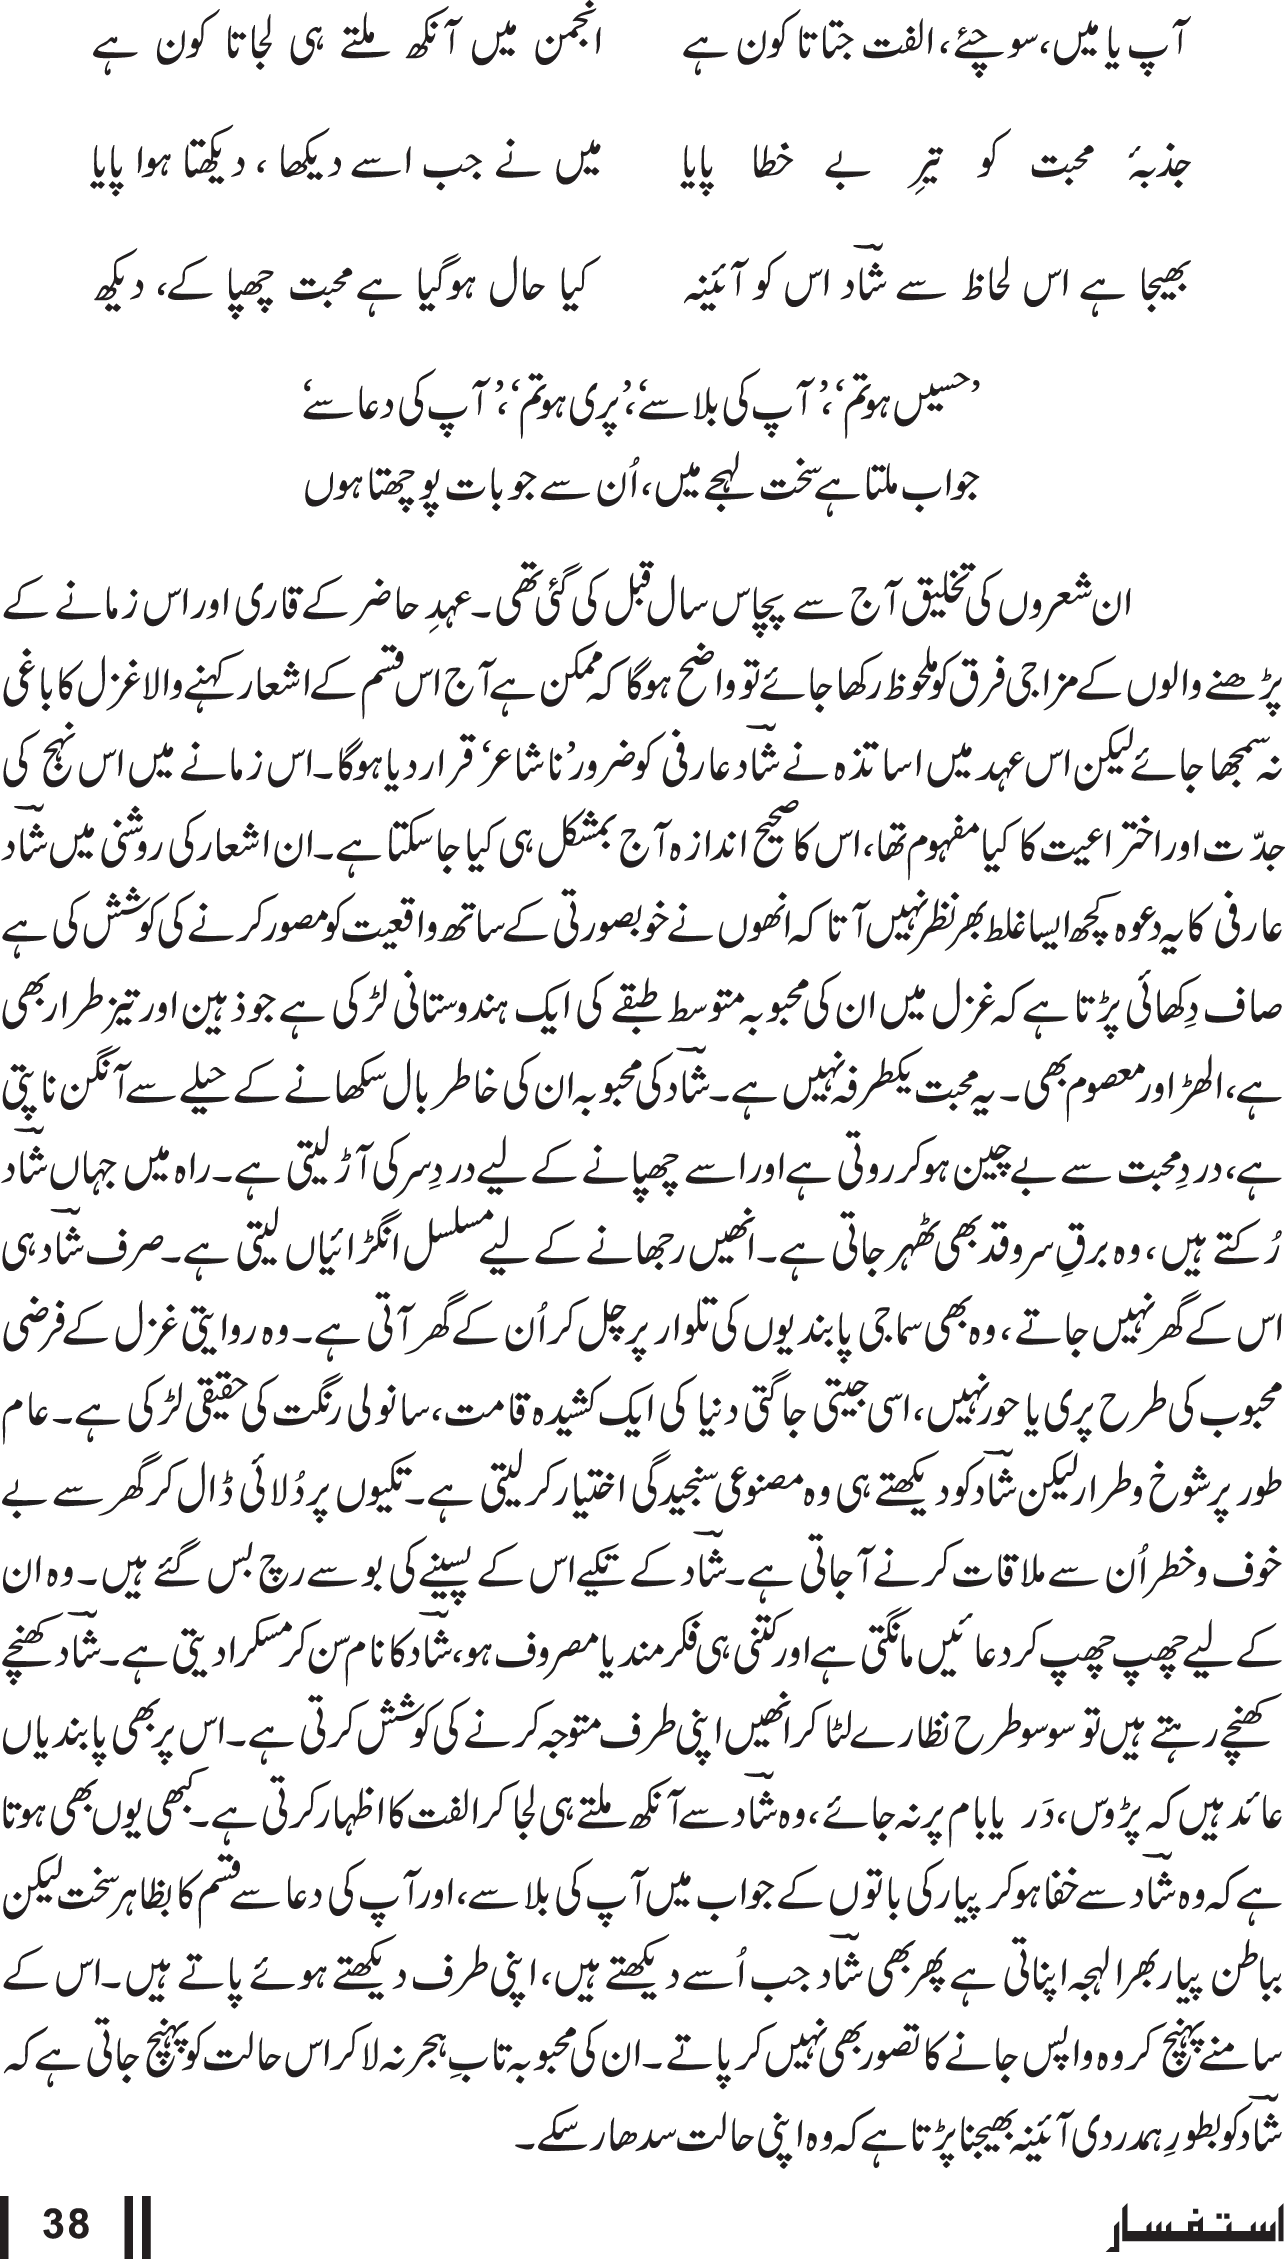 Second_Issue-38